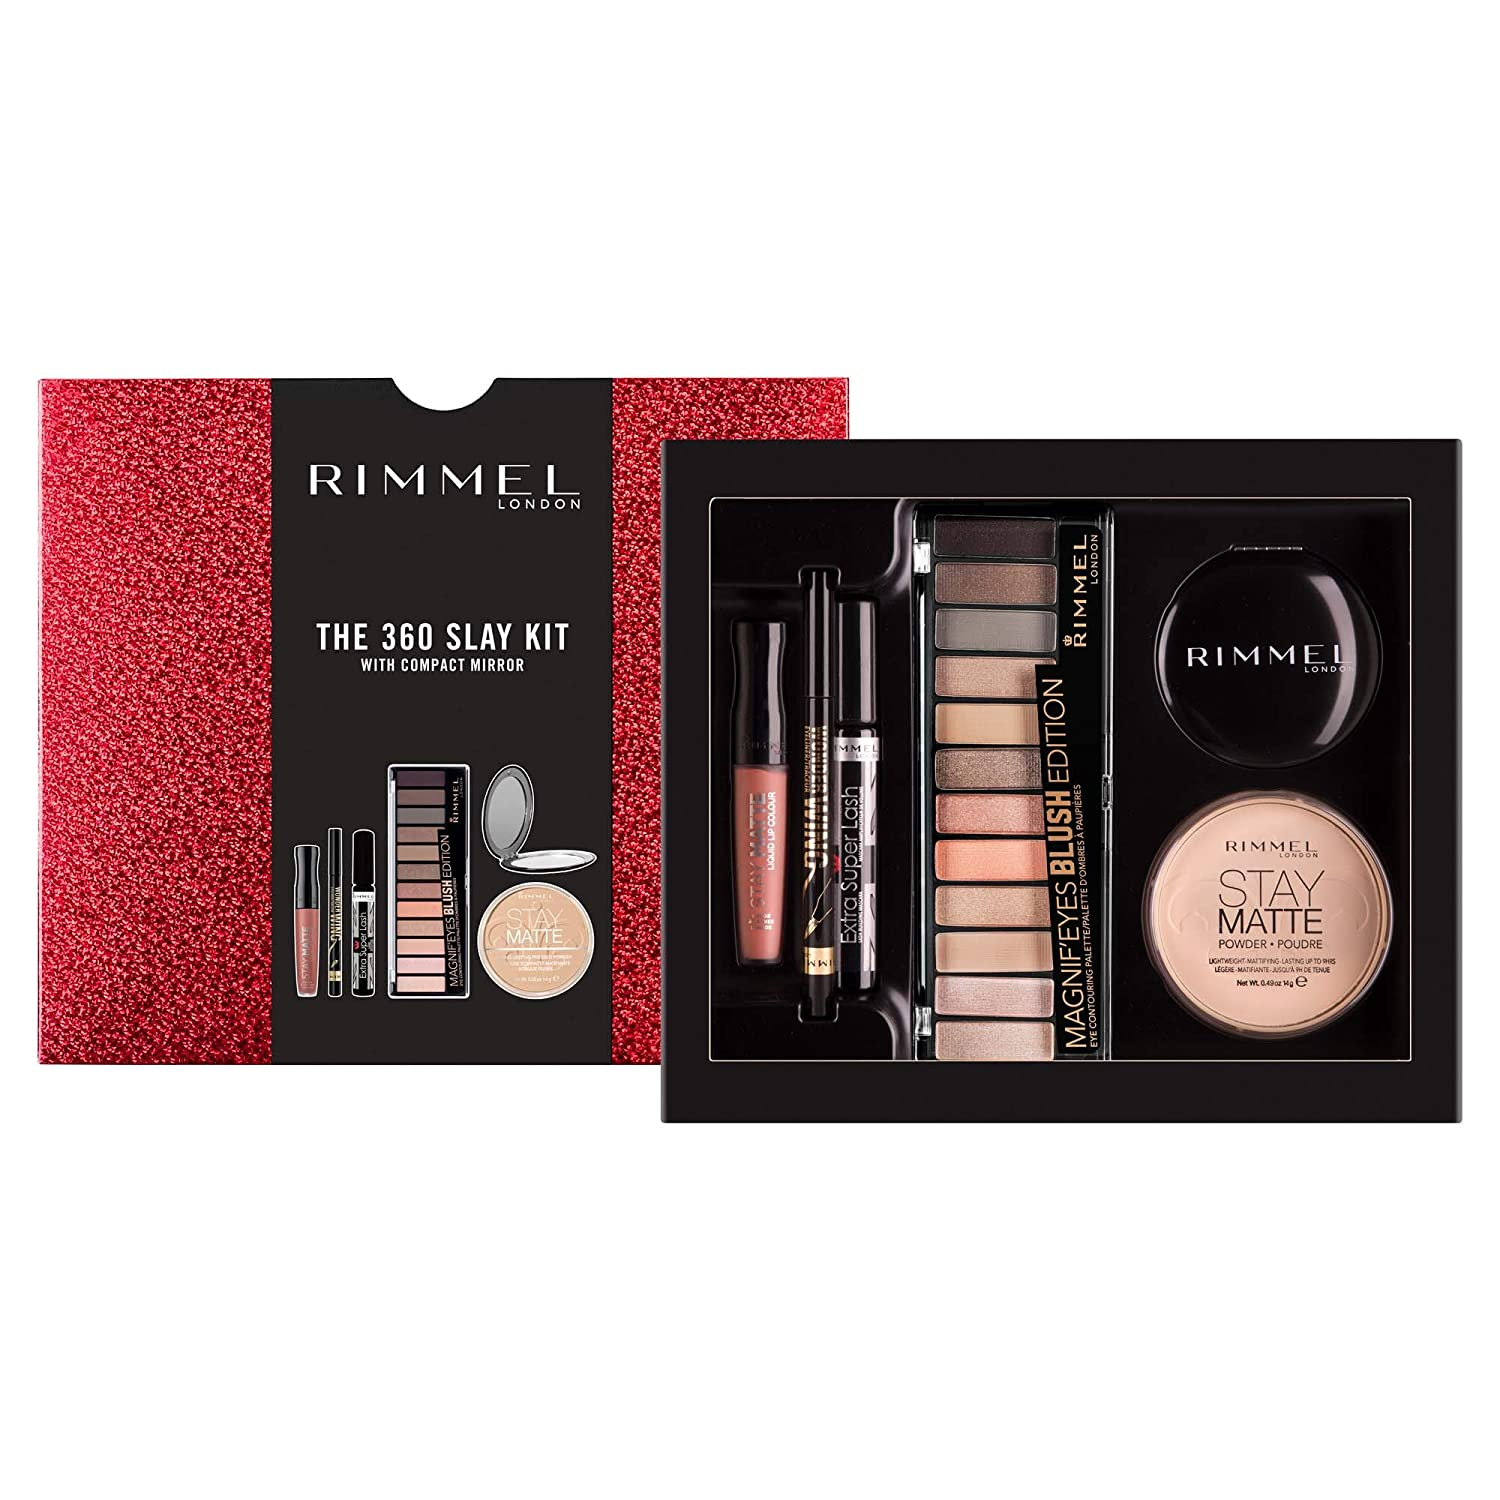 d299b3cfee4 Rimmel The 360 Slay Kit Gift Set (includes Stay Matte Powder, Stay Matte  Liquid Lipstick, Wonder Wing Eyeliner, Extra Super Lash Mascara, Magnif'eyes  12 Pan ...